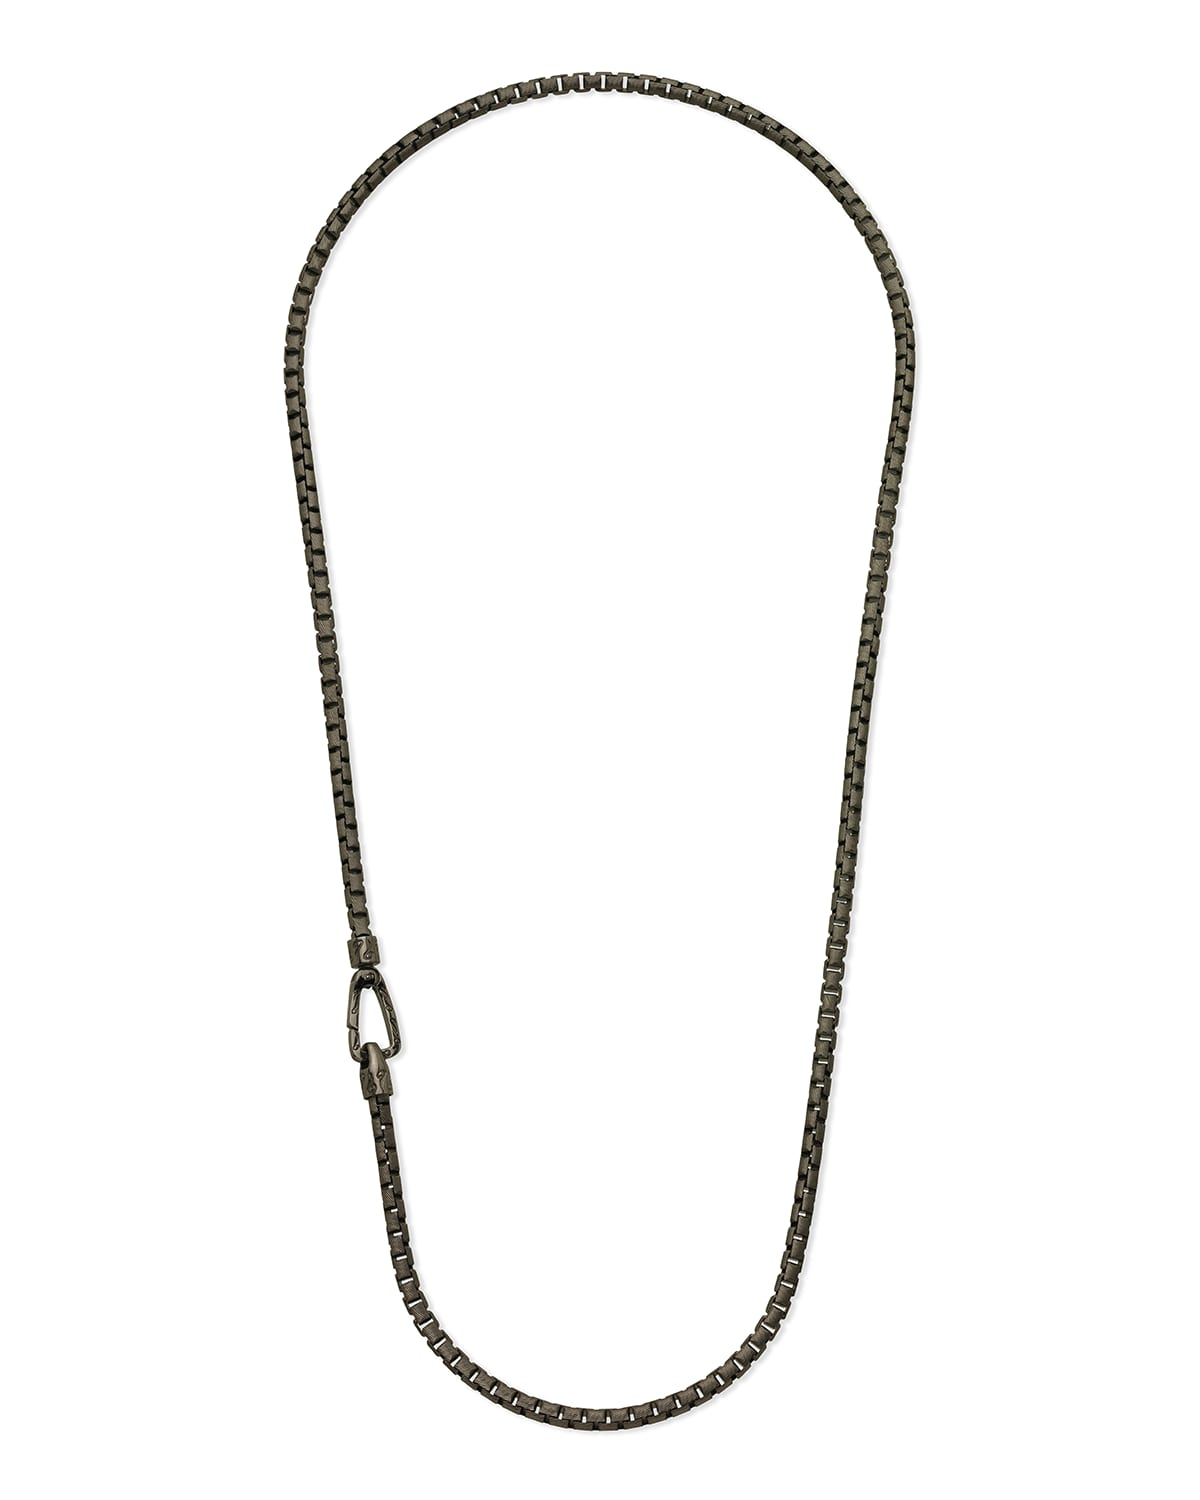 Carved Tubular Burnished Silver Necklace with Matte Chain and Polished Clasp